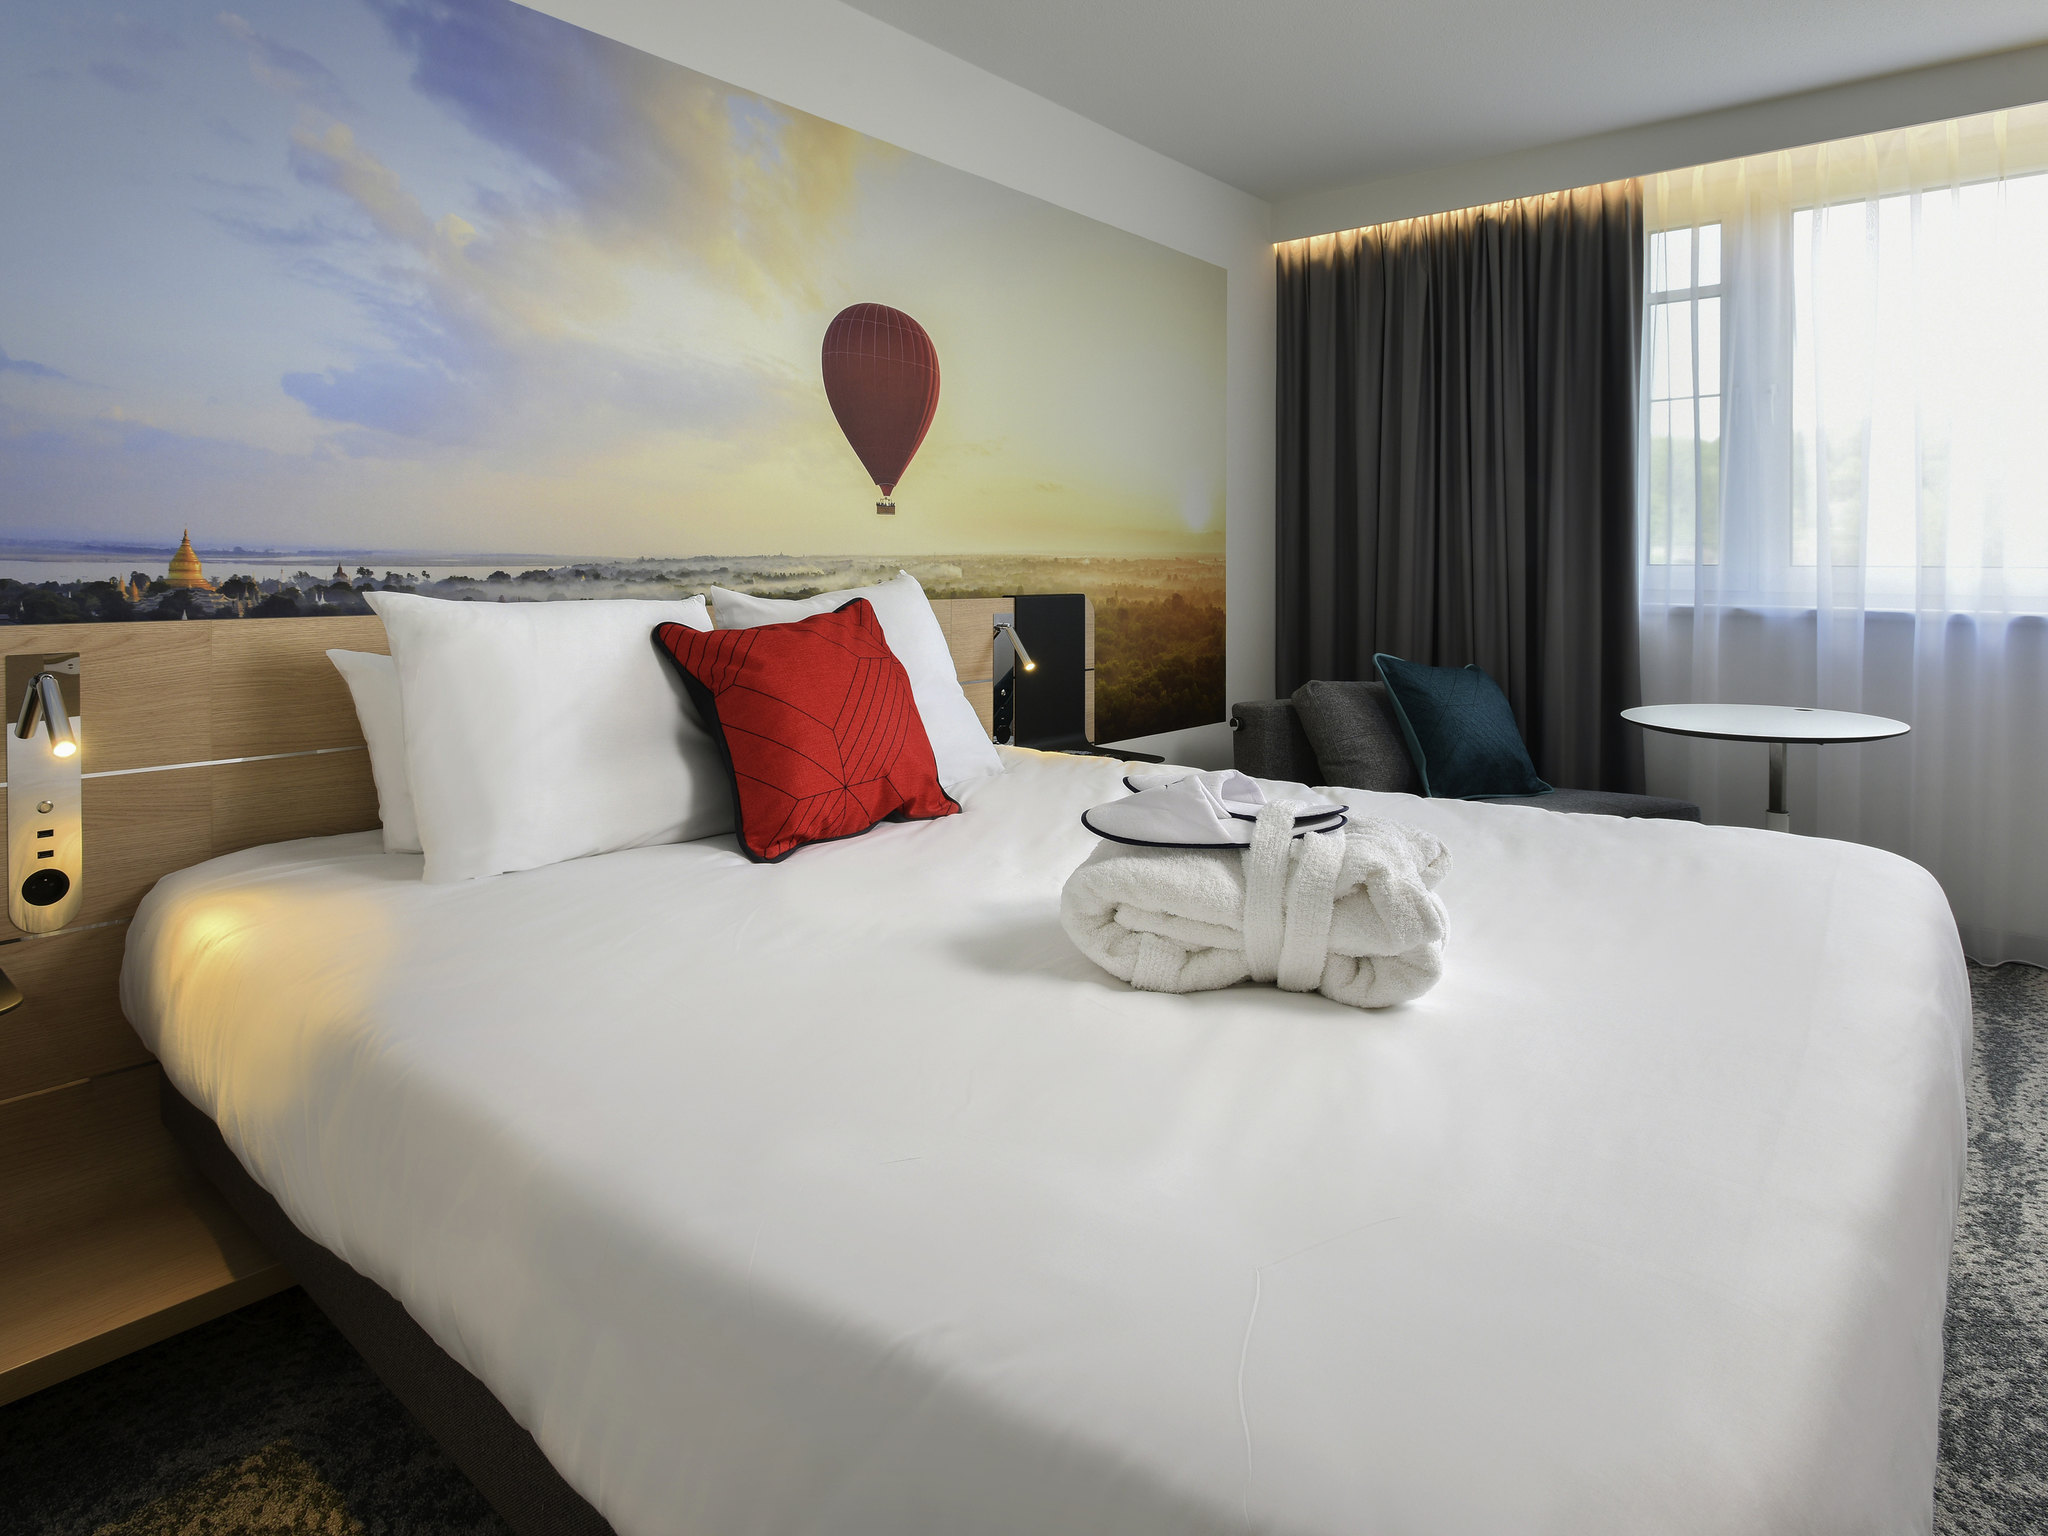 Hotel - Hotel Wavre Brussels East